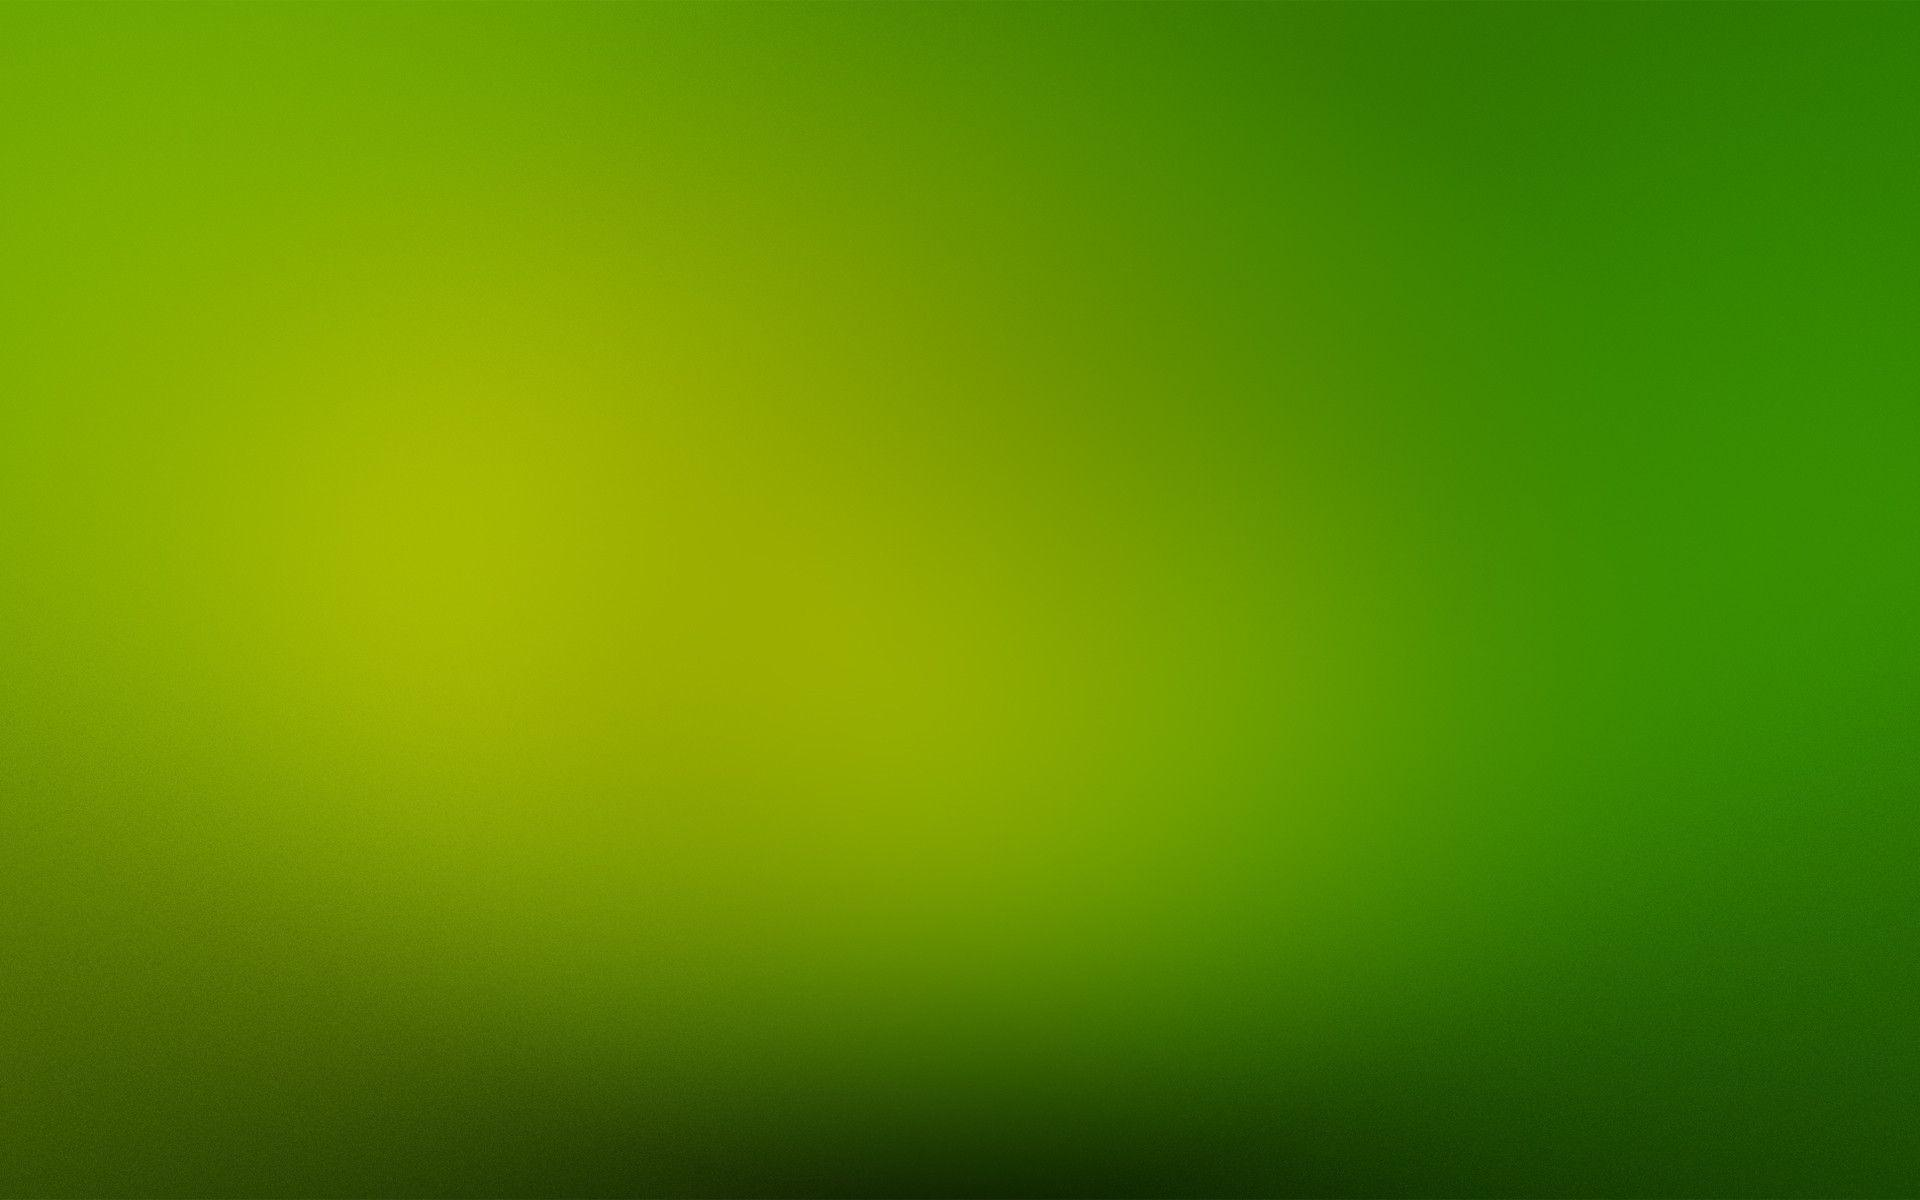 Light Green Wallpapers - Wallpaper Cave